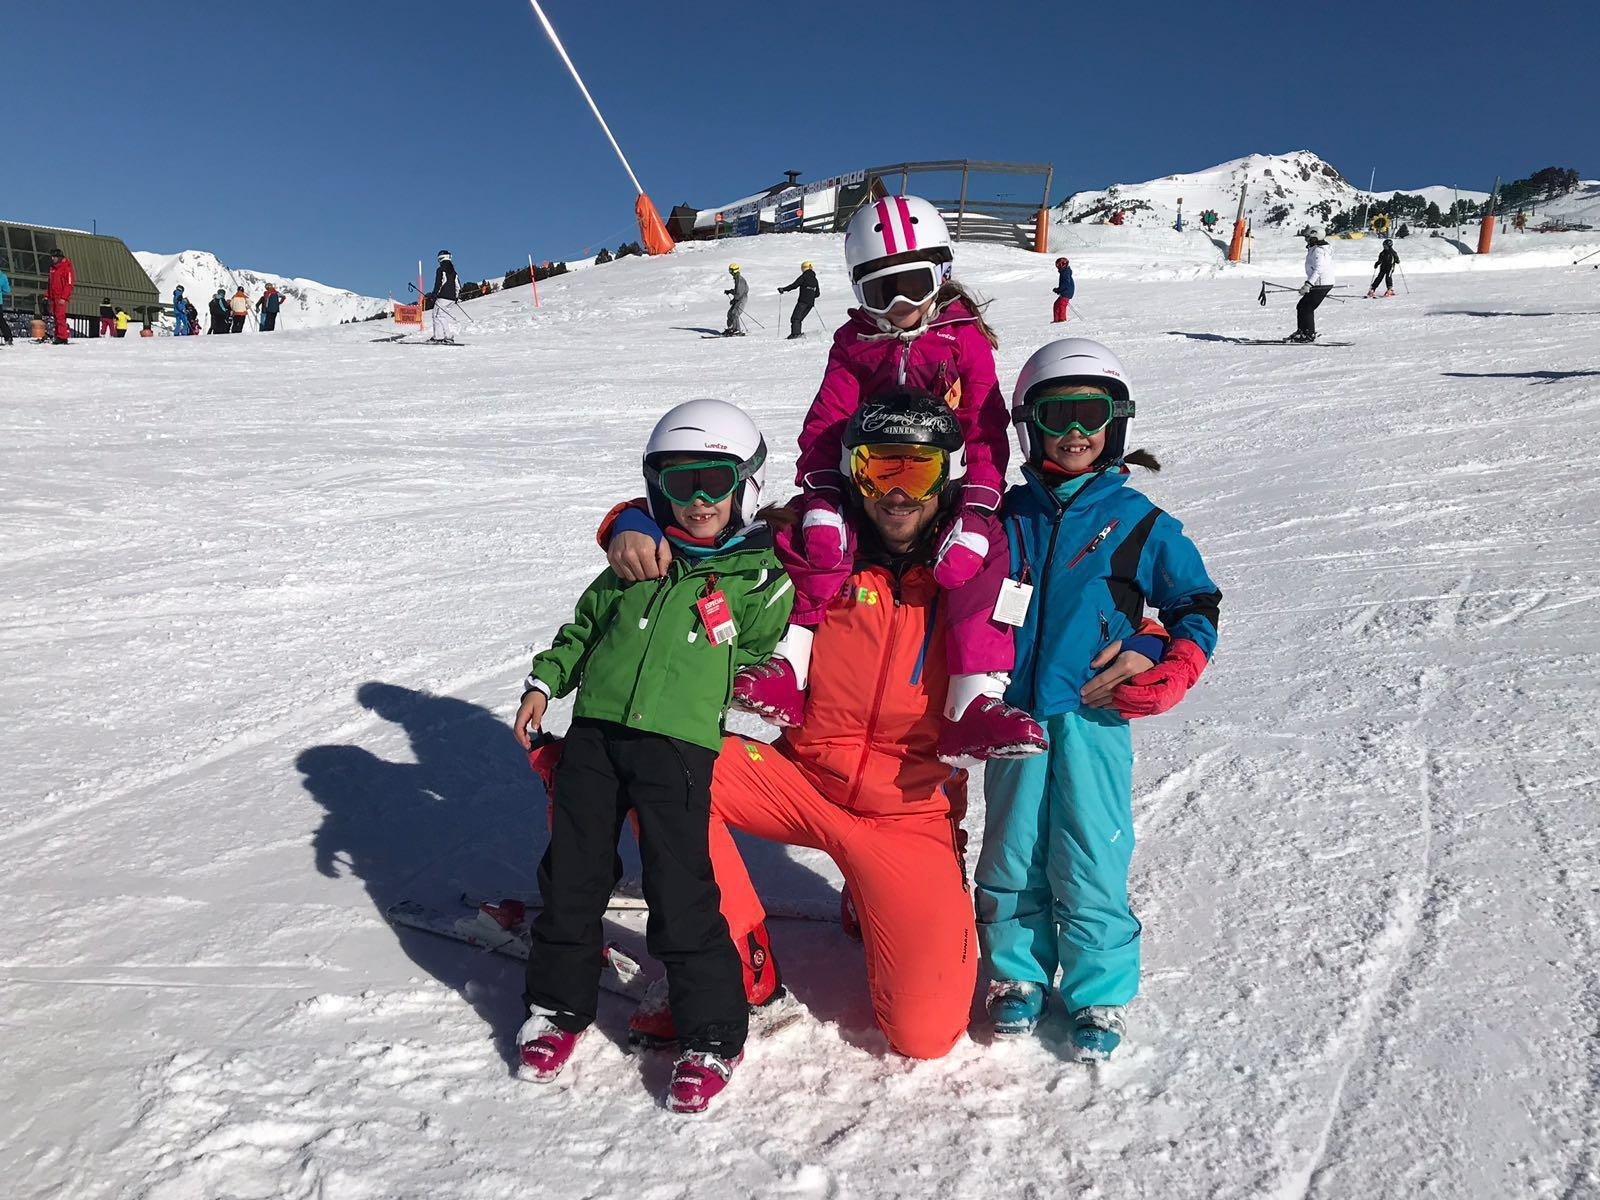 Ski Lessons for Kids (4-13 years) - All Levels by Pekes Ski Baqueira 5a1b1b90b